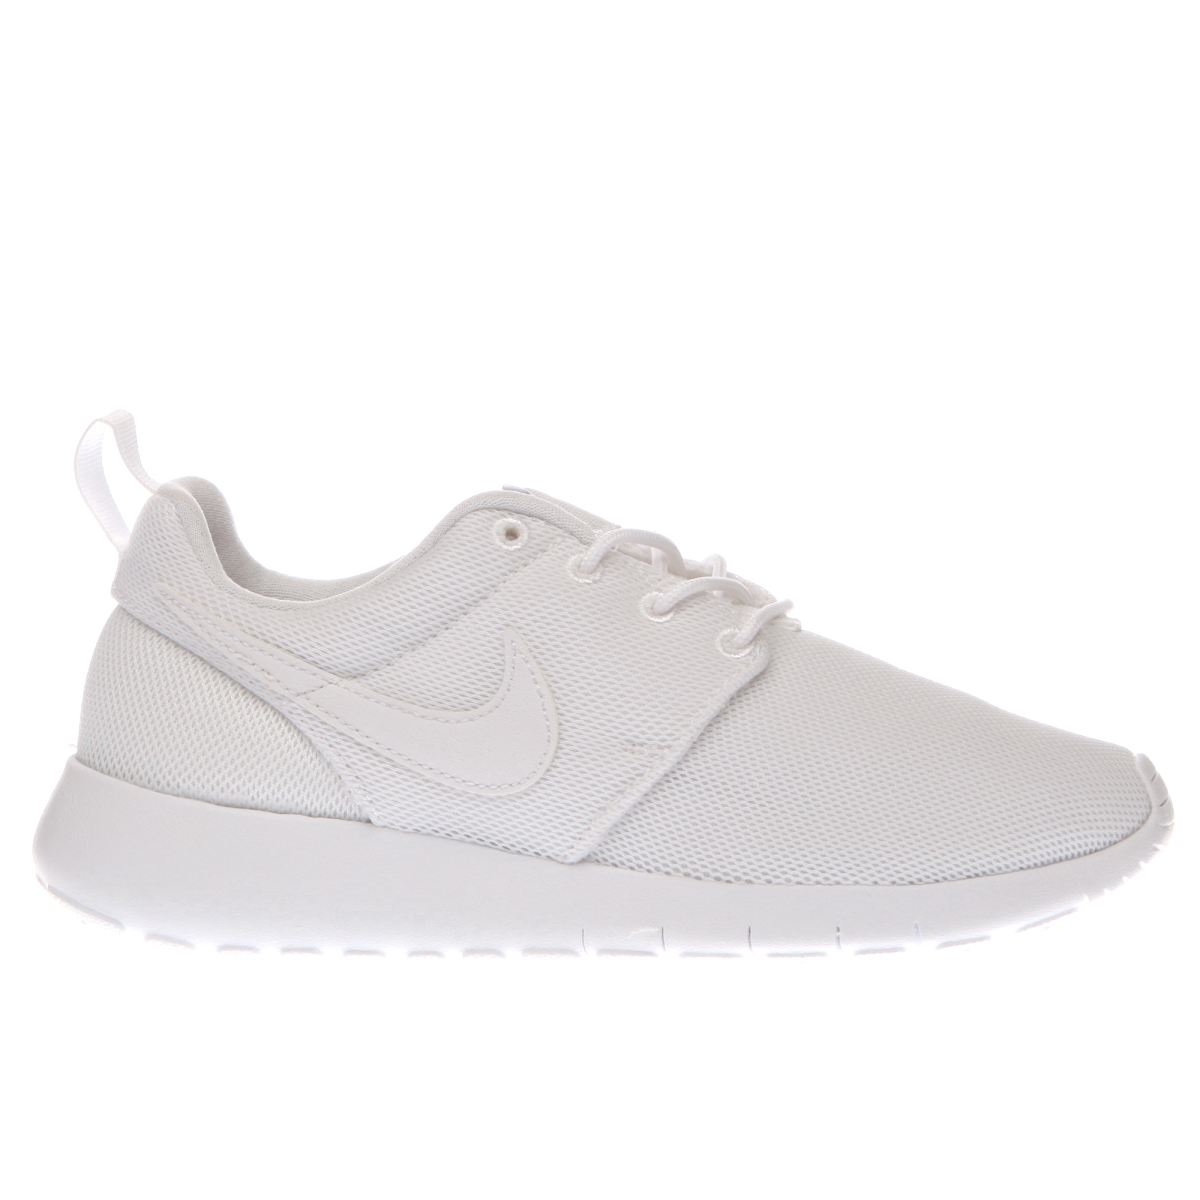 scnnds Nike Roshe Run Trainers | Womens, Mens & Kids | schuh